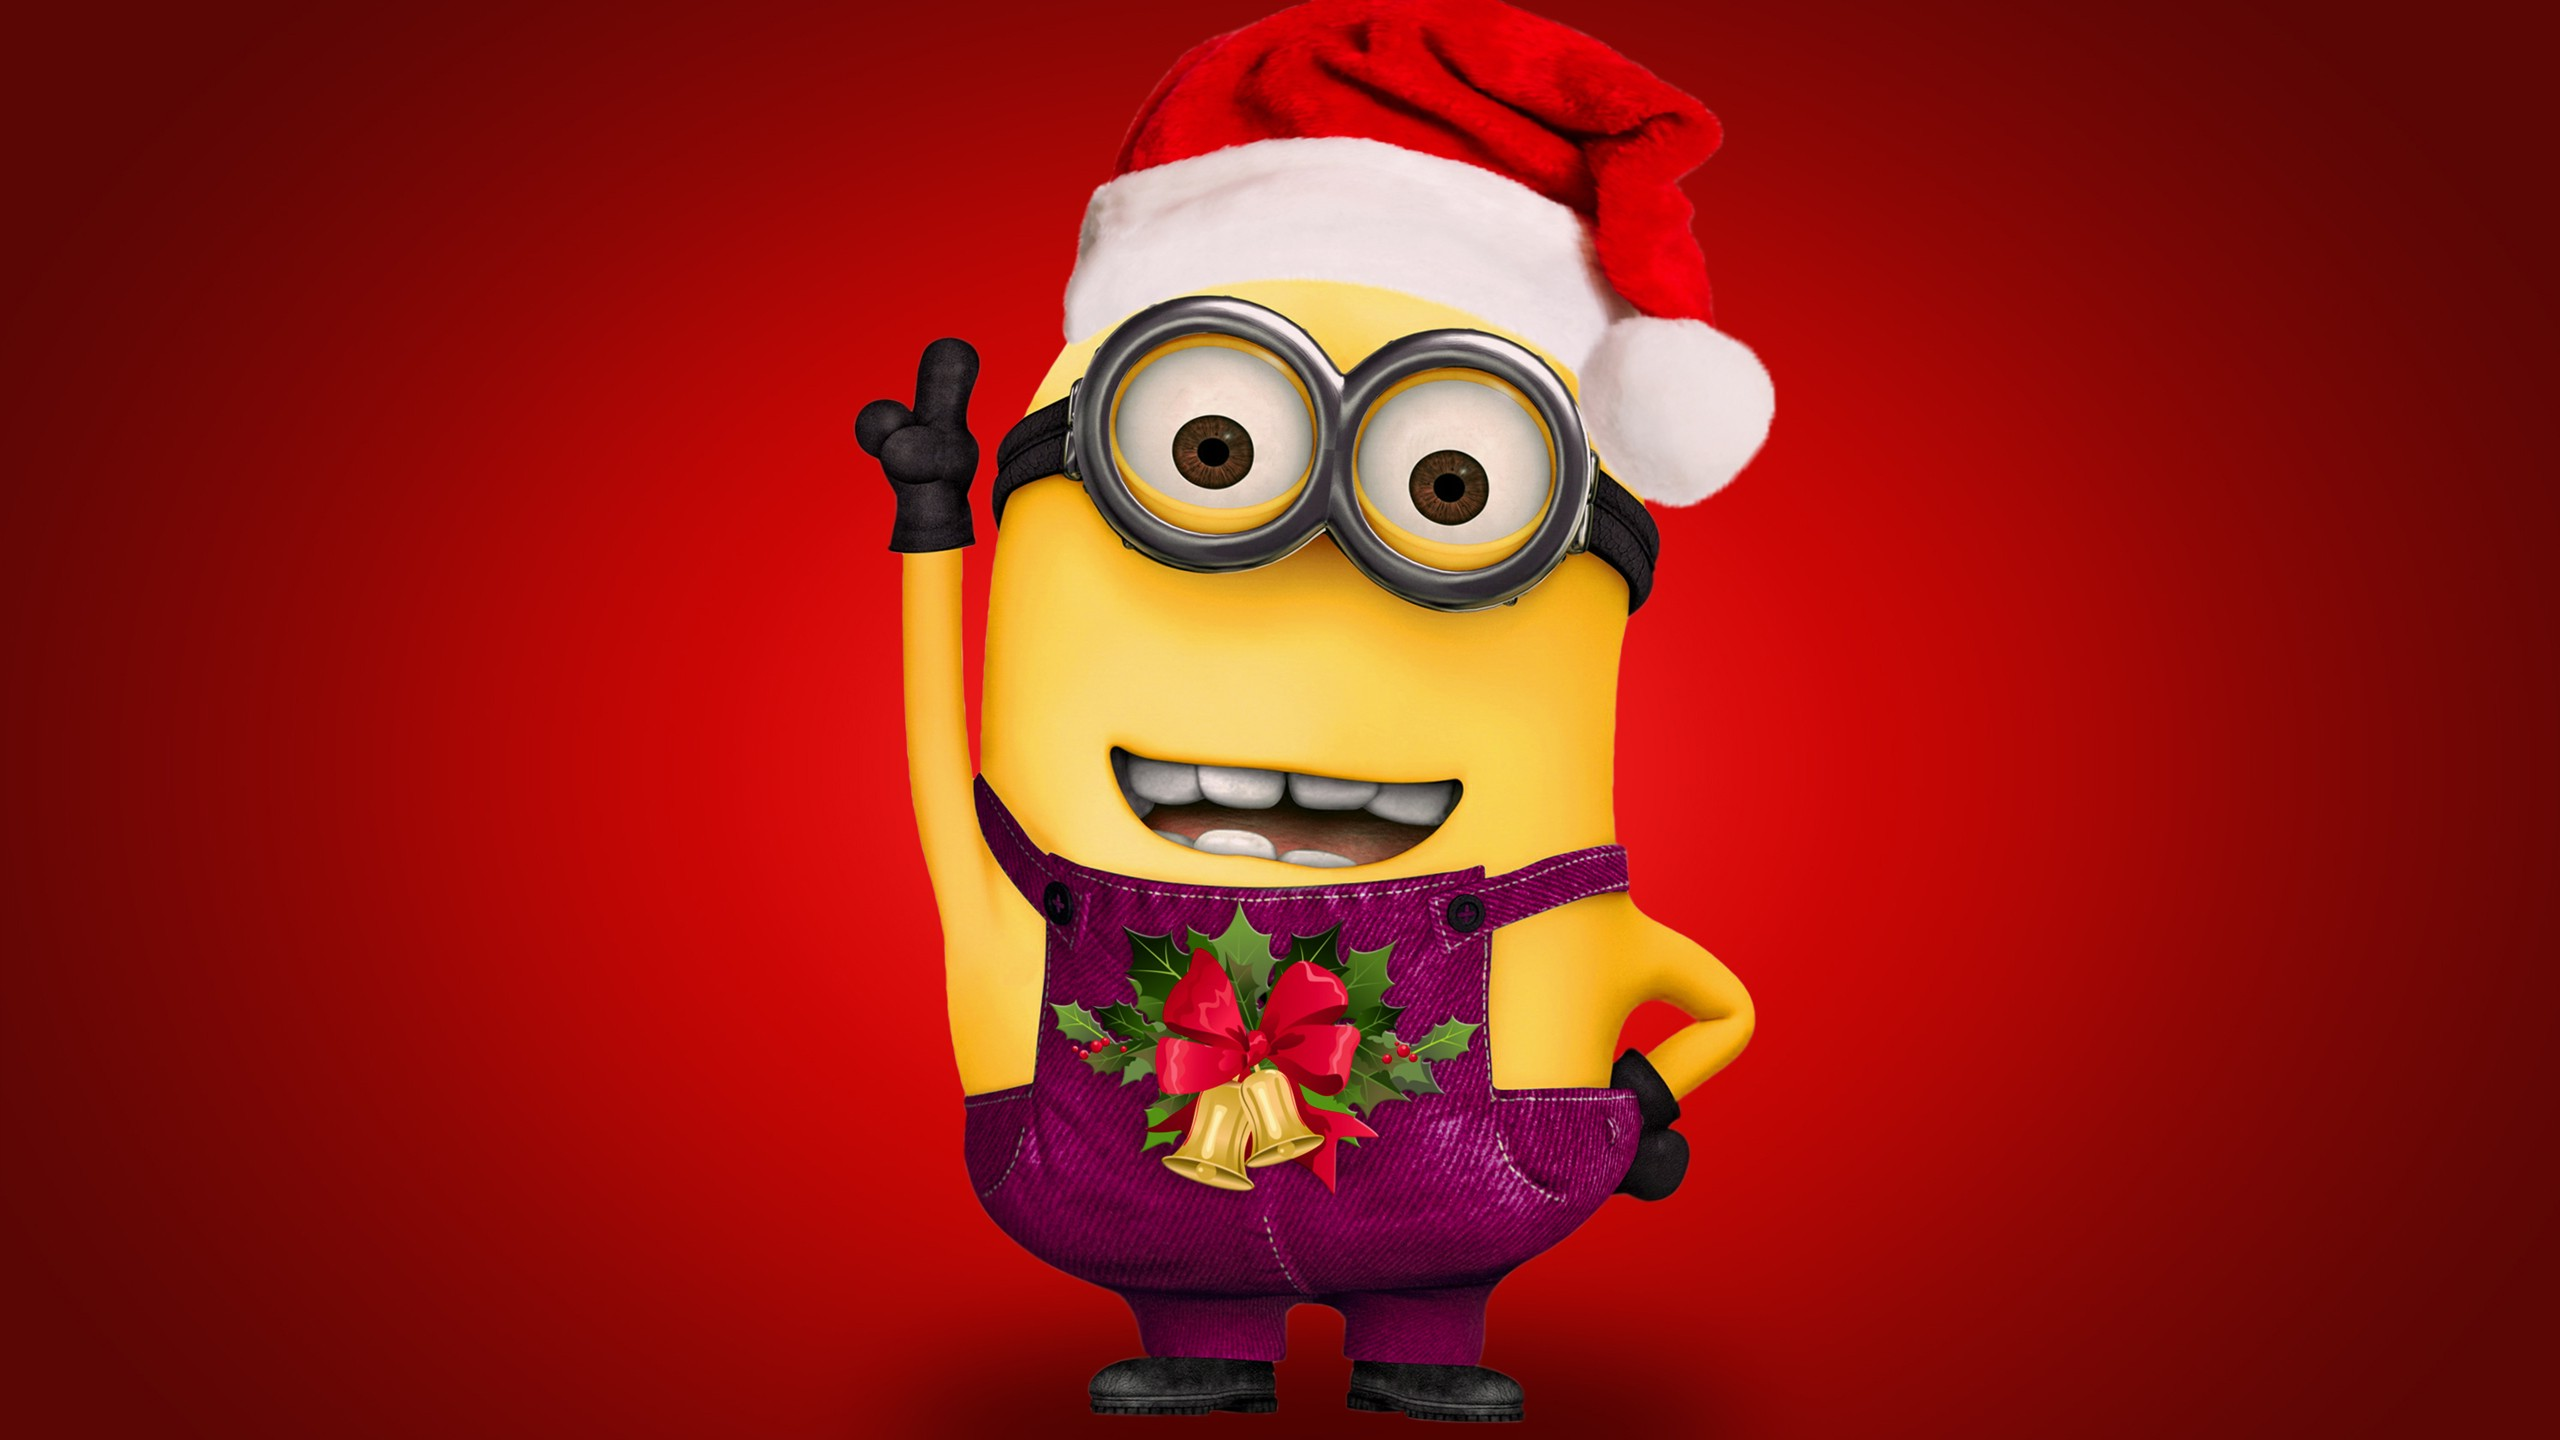 3d Christmas Wallpaper Backgrounds 2015 Minions Christmas Wallpapers Hd Desktop And Mobile